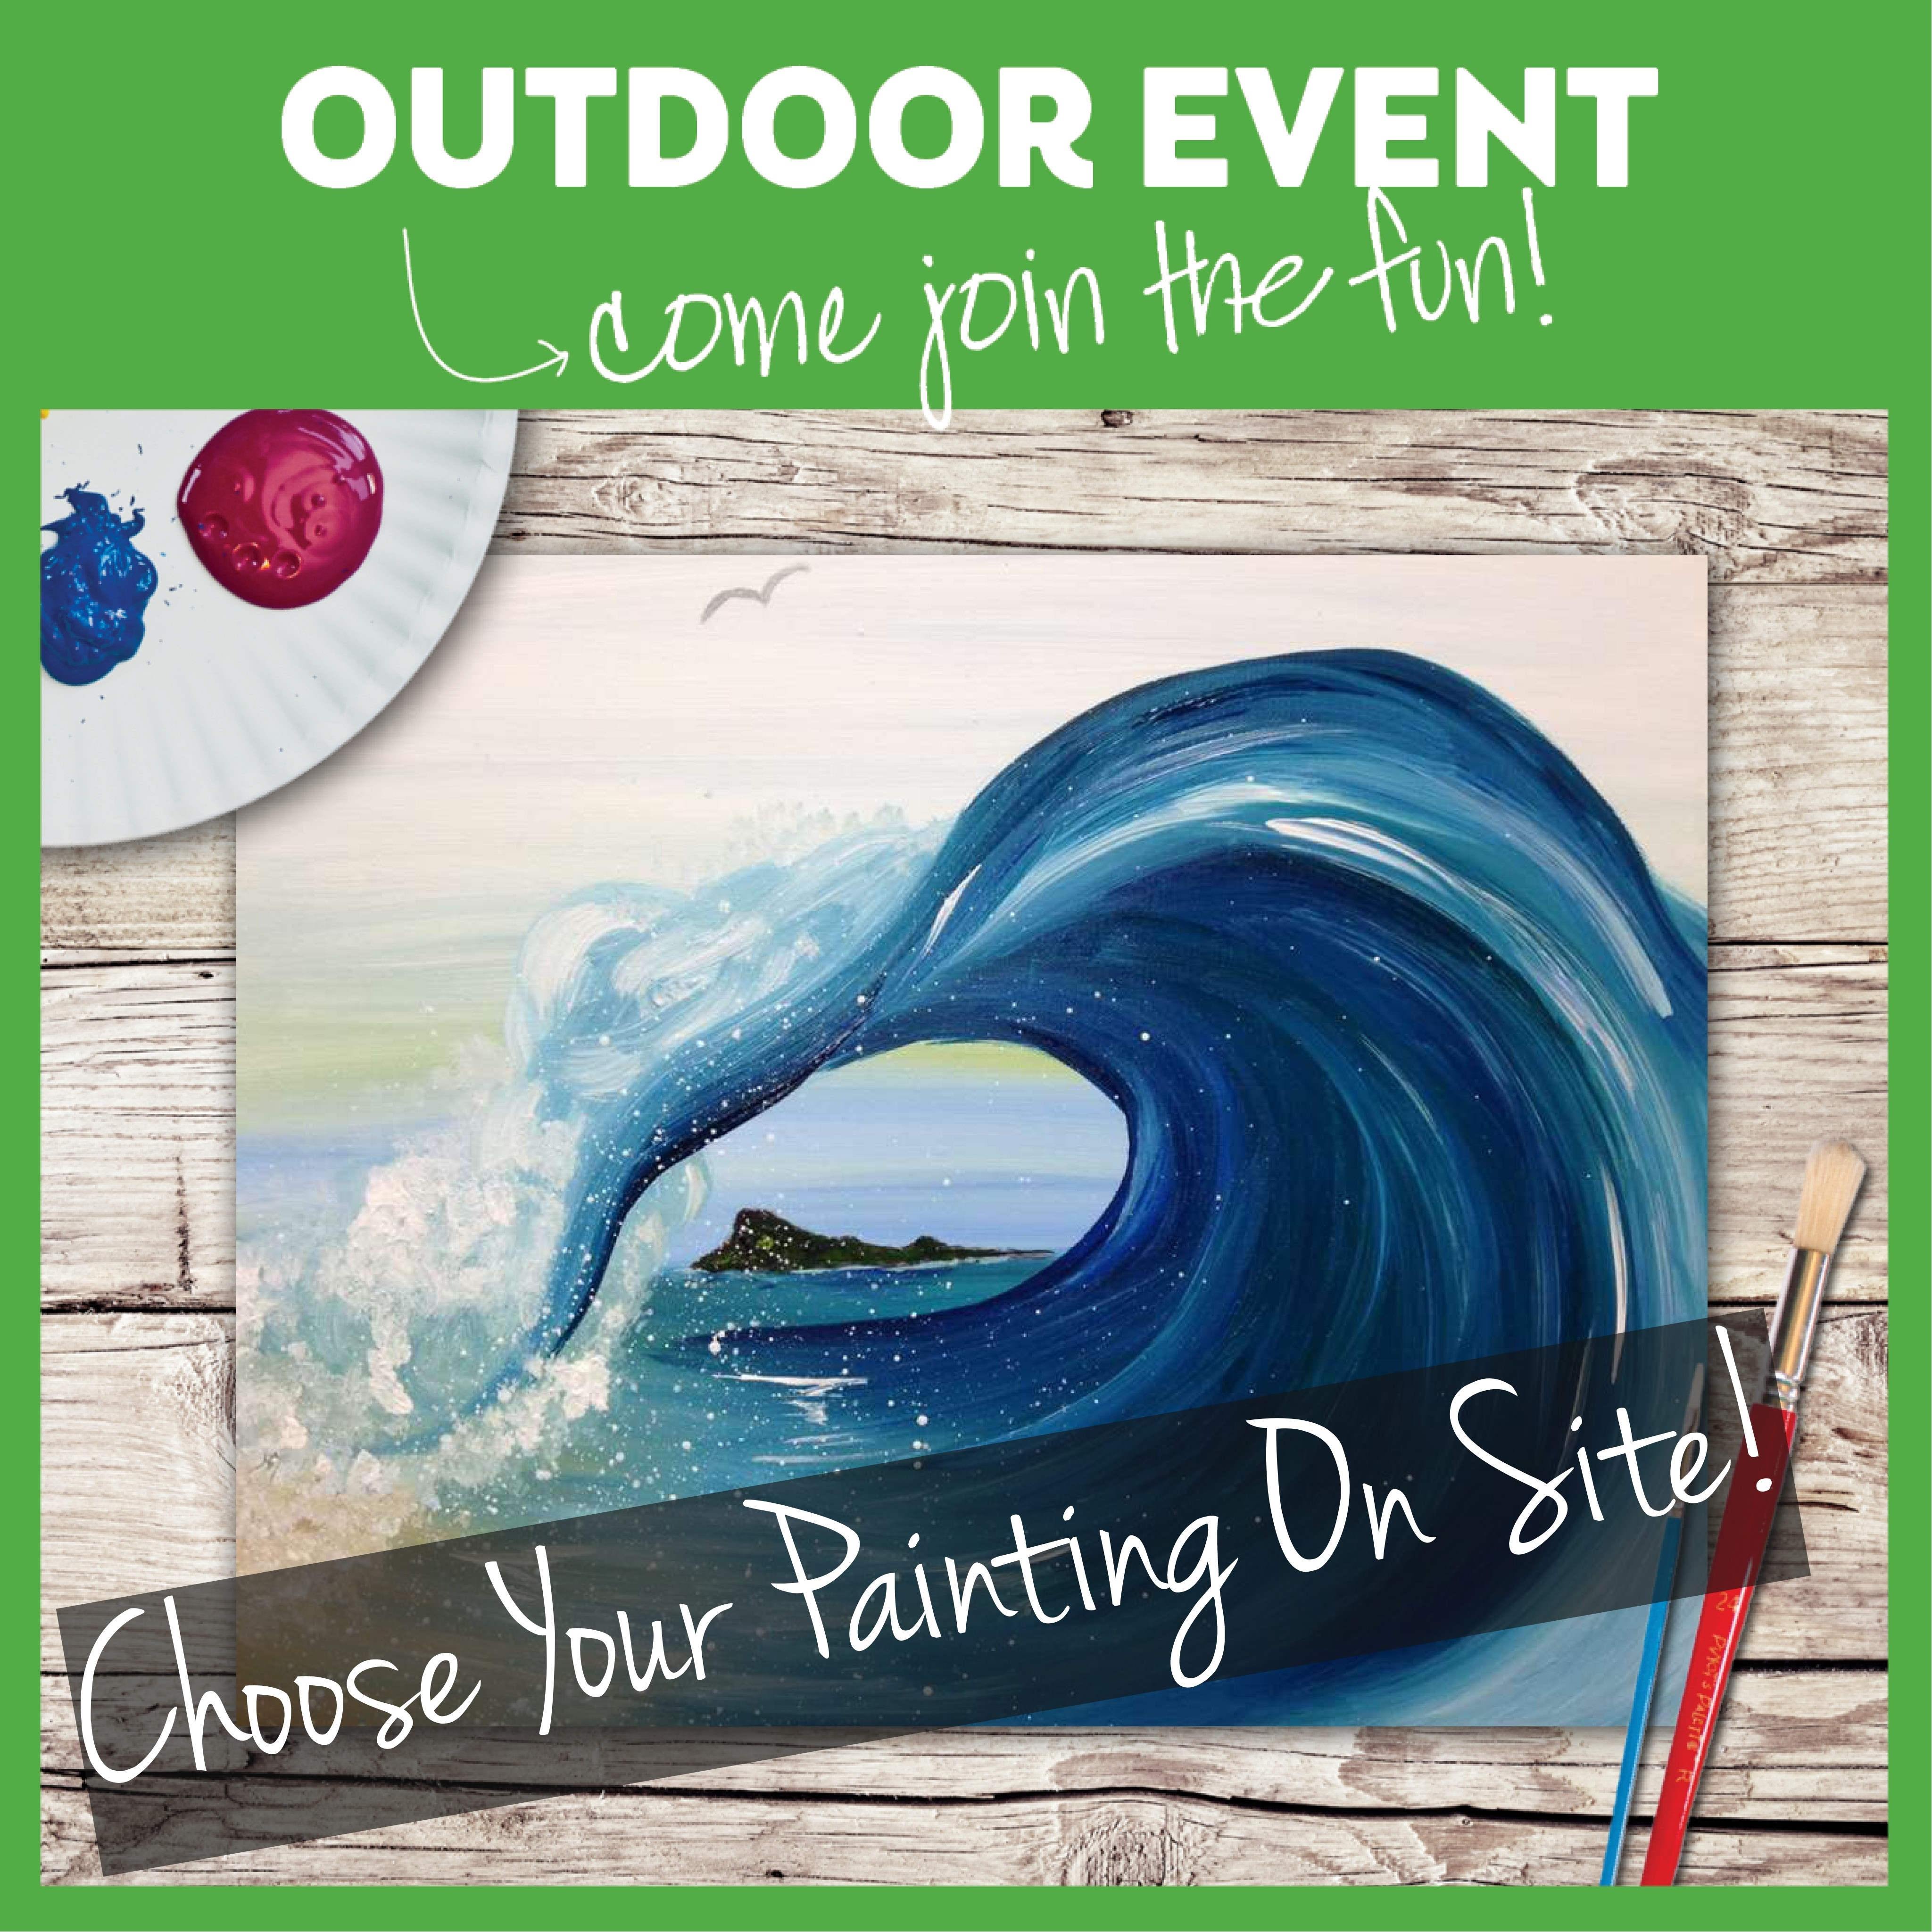 OUTDOOR CLASS!  COME TO THE STUDIO AND PICK THE VIDEO GUIDED PAINTING OF YOUR CHOICE!